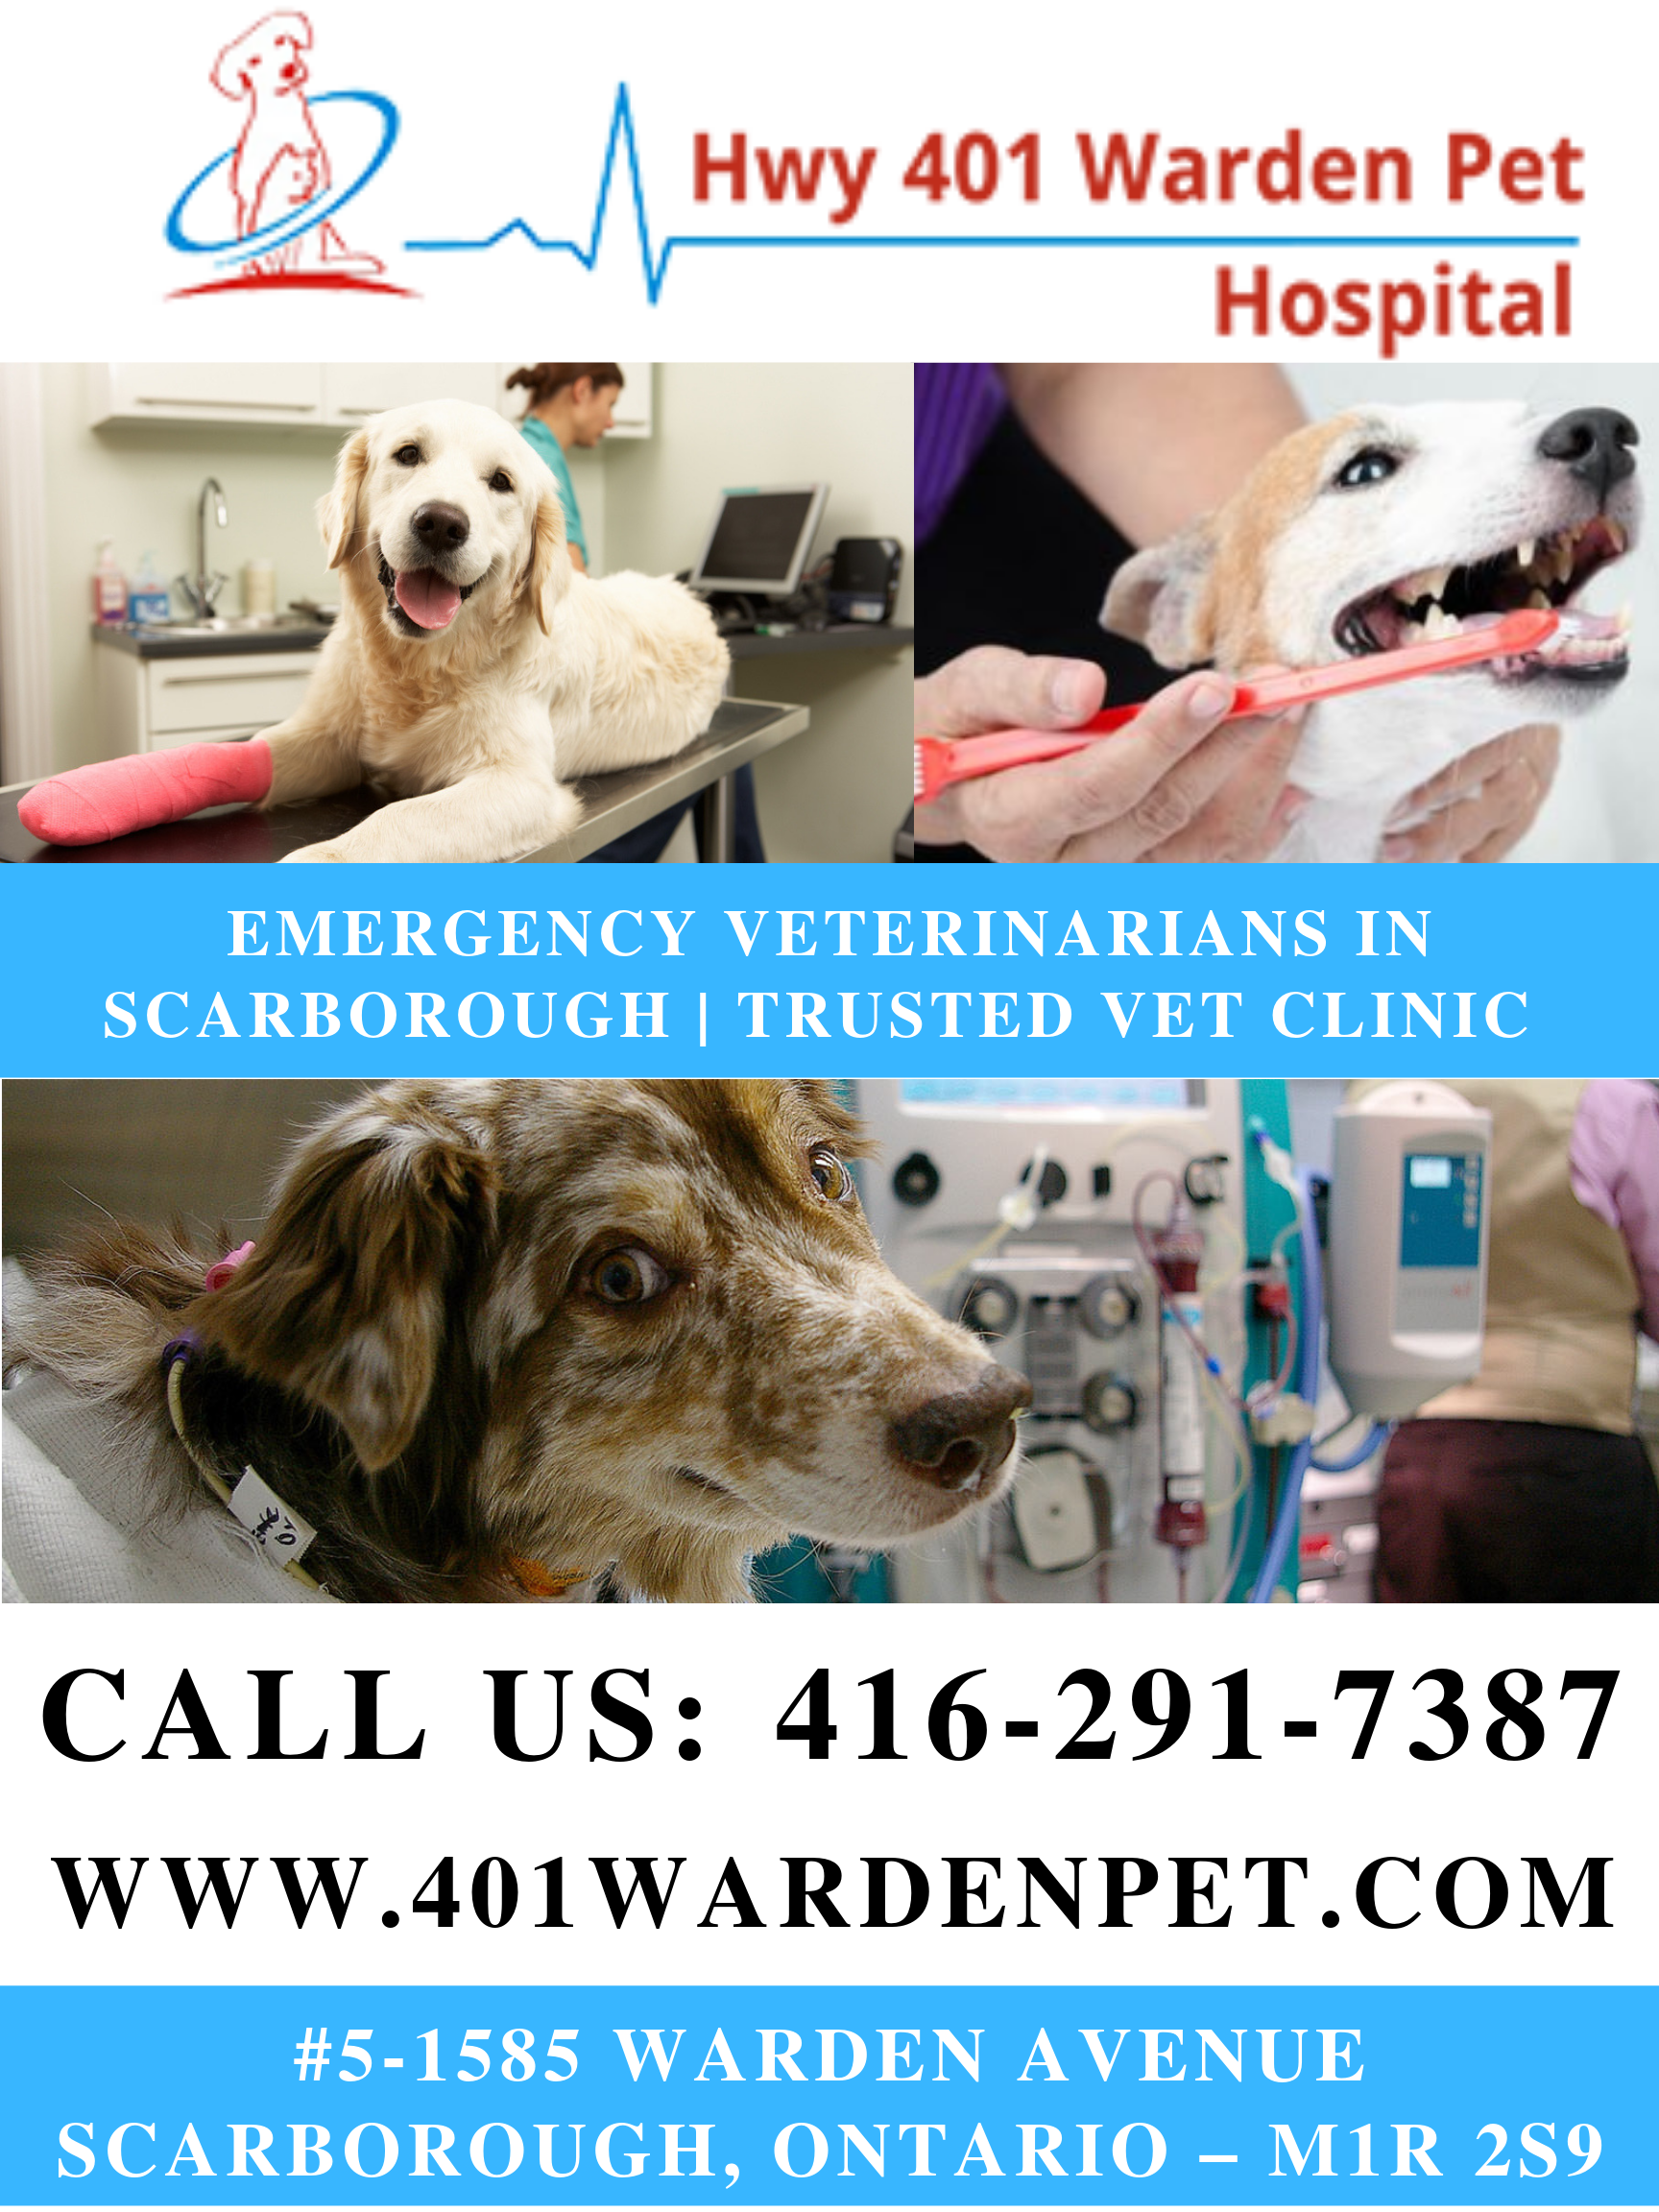 Emergency Veterinarians In Scarborough Trusted Vet Clinic Animal Hospital Vet Clinics Pet Clinic